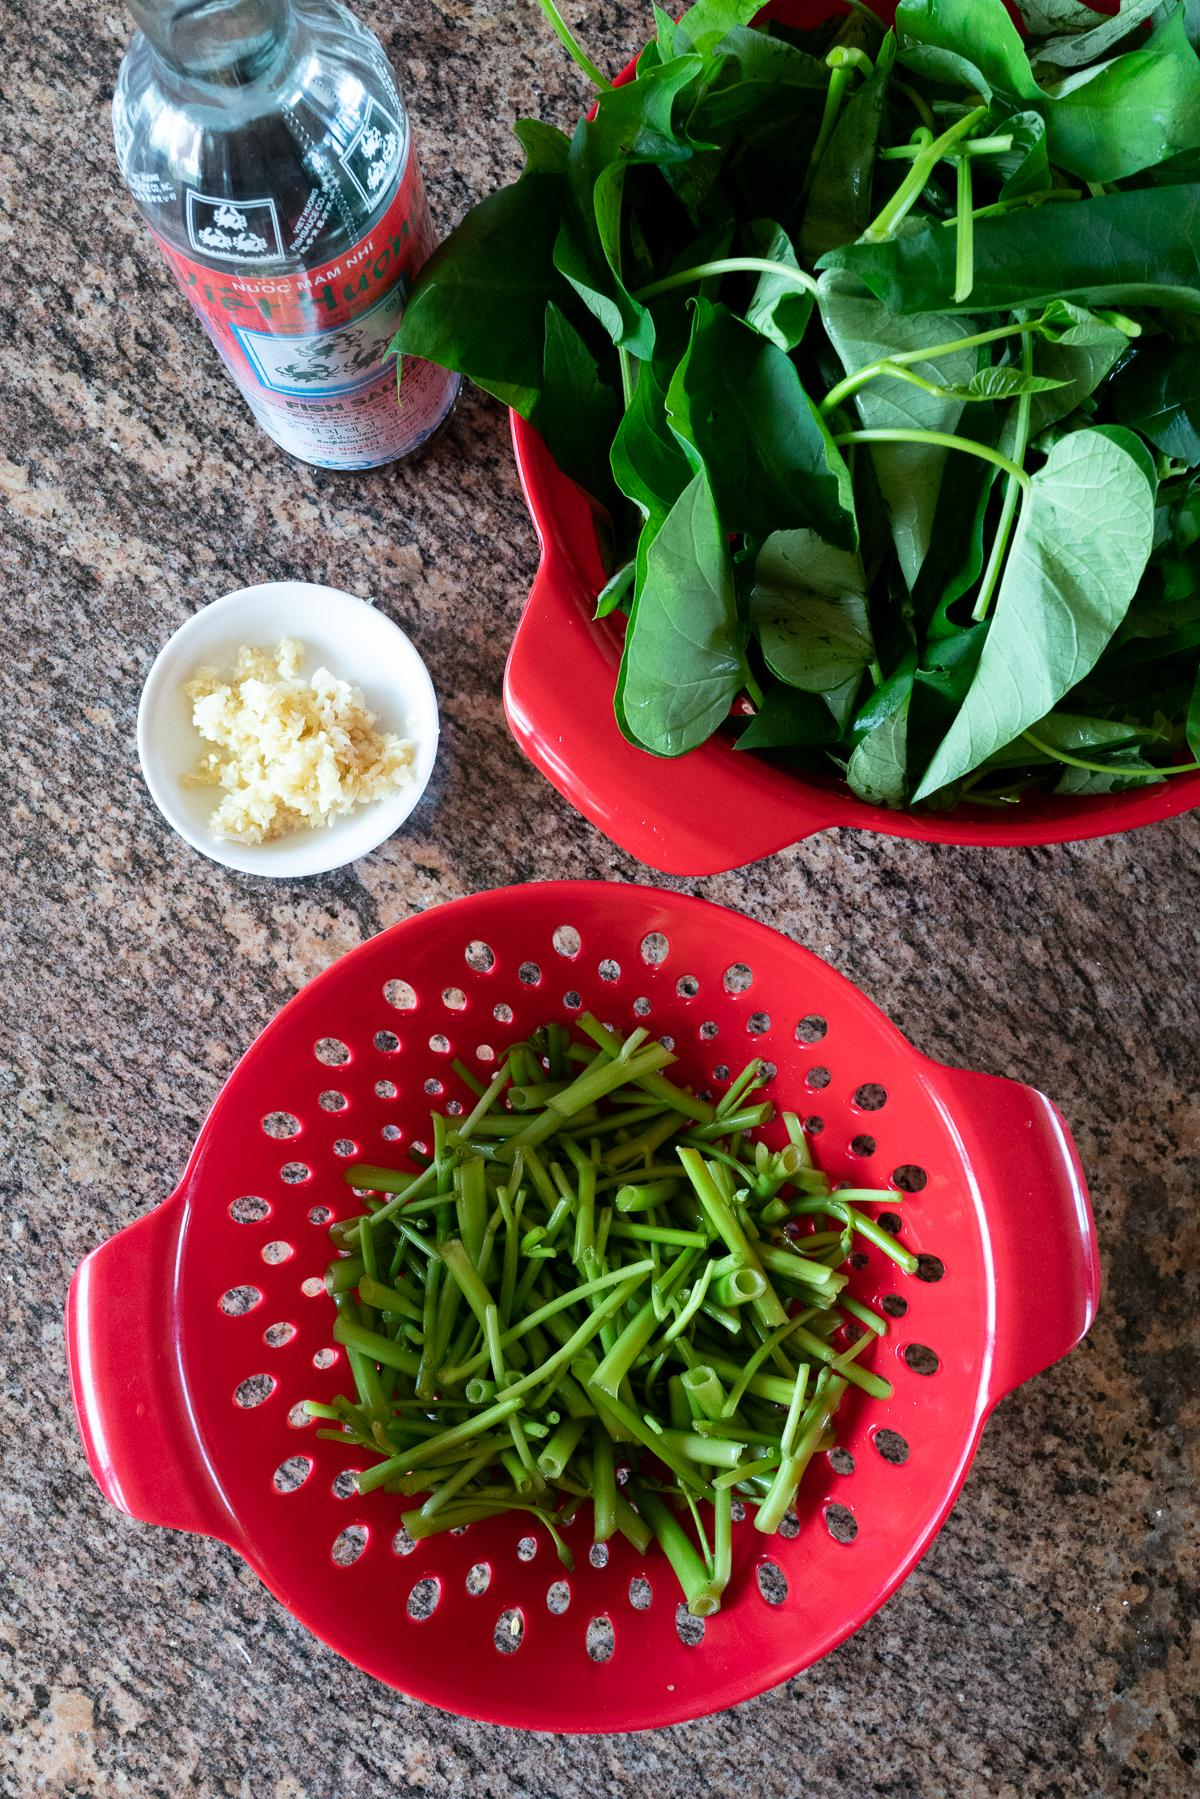 Ingredients for stir fried ong choy (ong choy, garlic, fish sauce)